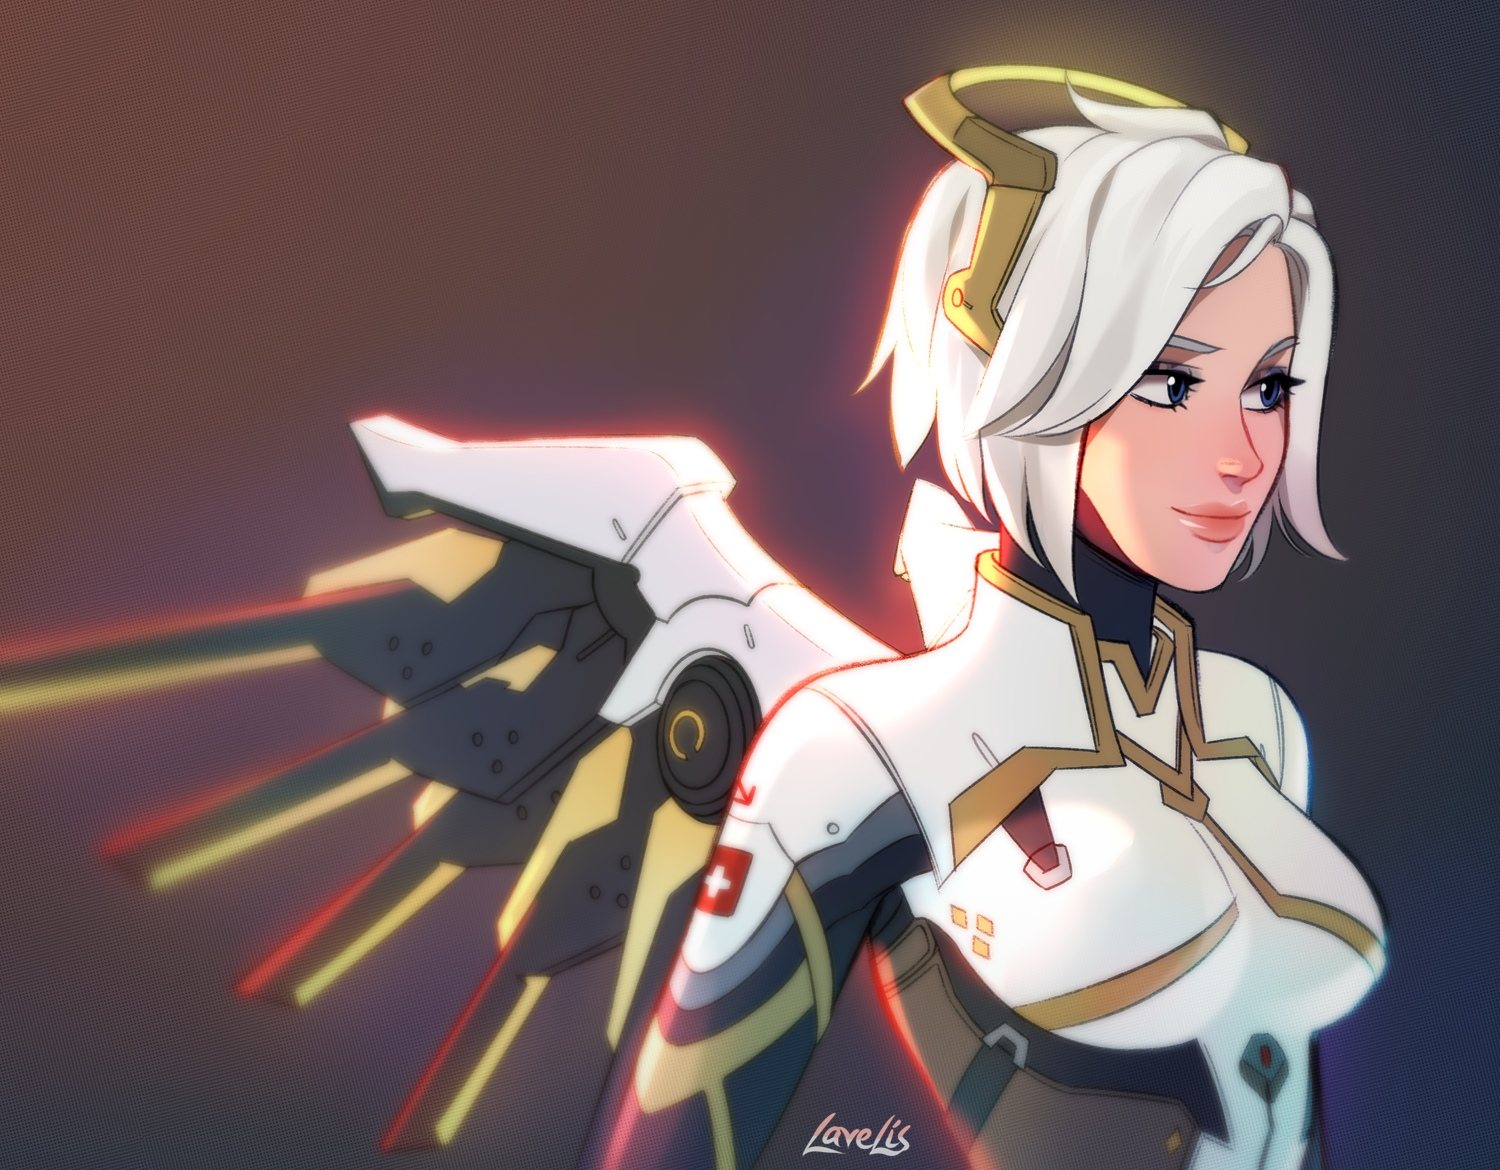 Overwatch Blizzard Entertainment Mercy Overwatch Video Games Girls Video Game Characters Women White 1500x1170